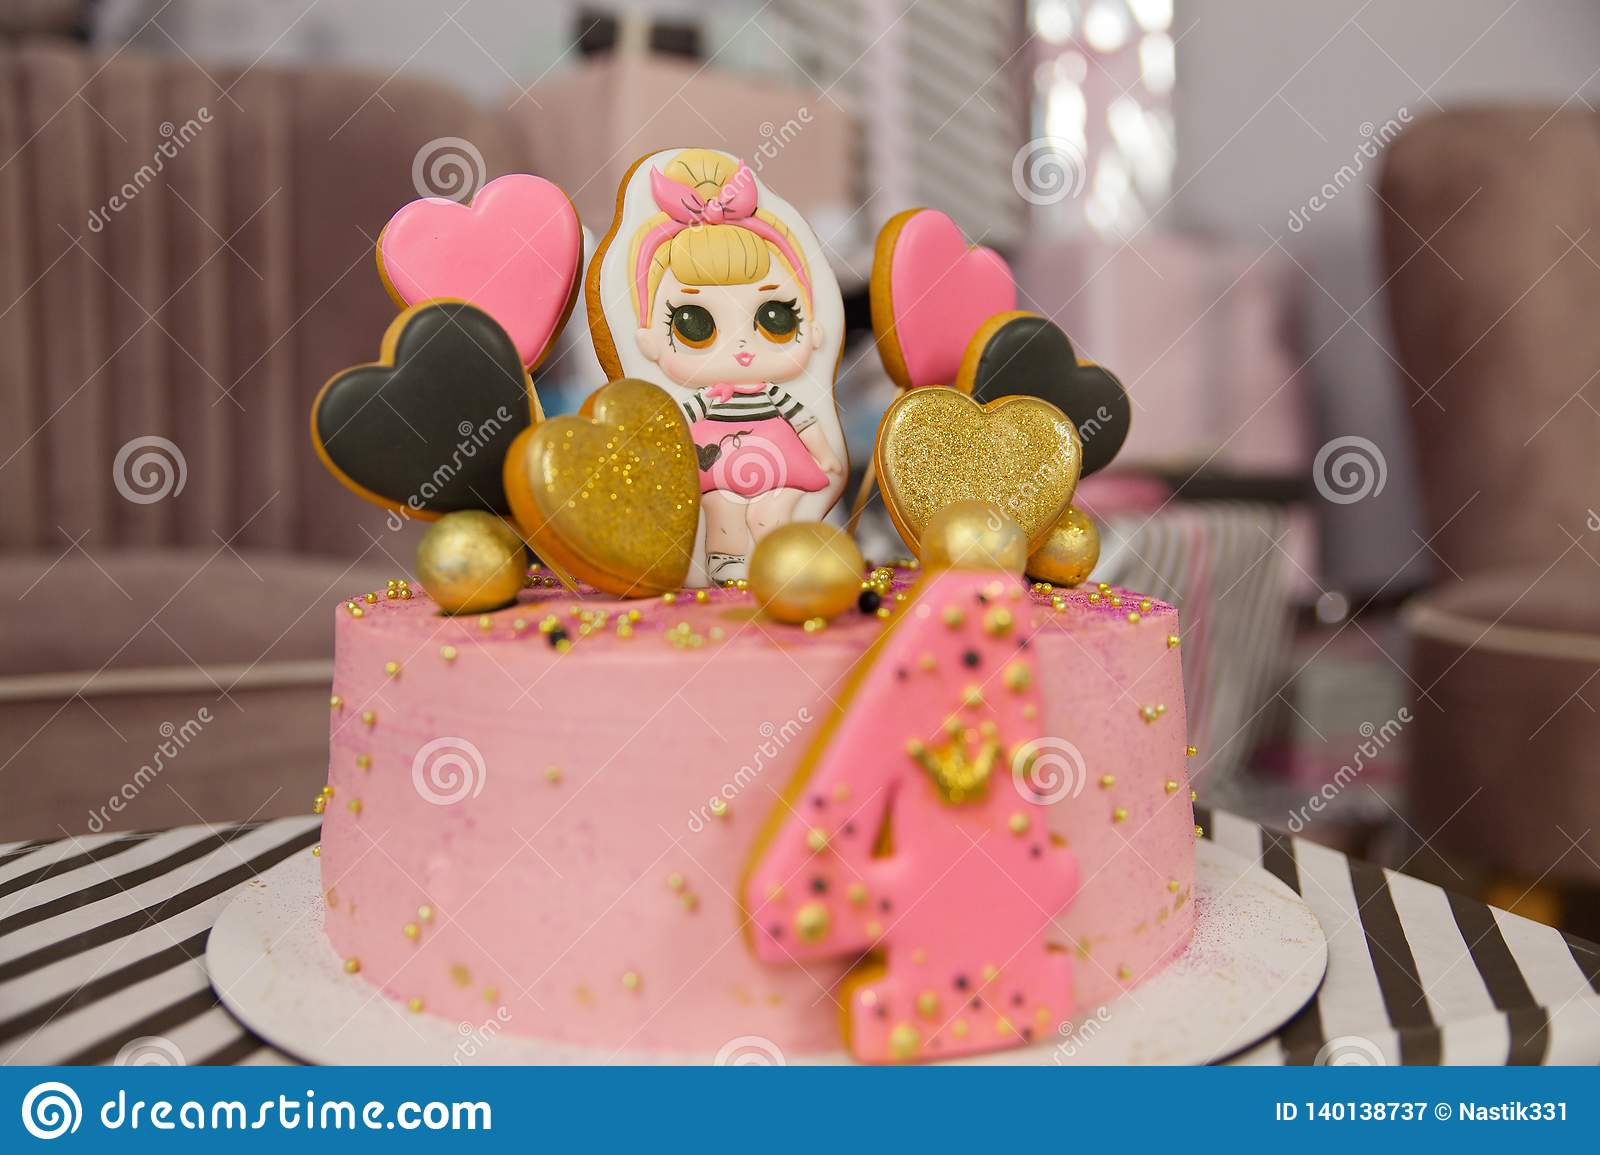 Awesome Birthday Cake For 4 Years Decorated With Gingerbread Hearts With Funny Birthday Cards Online Hetedamsfinfo